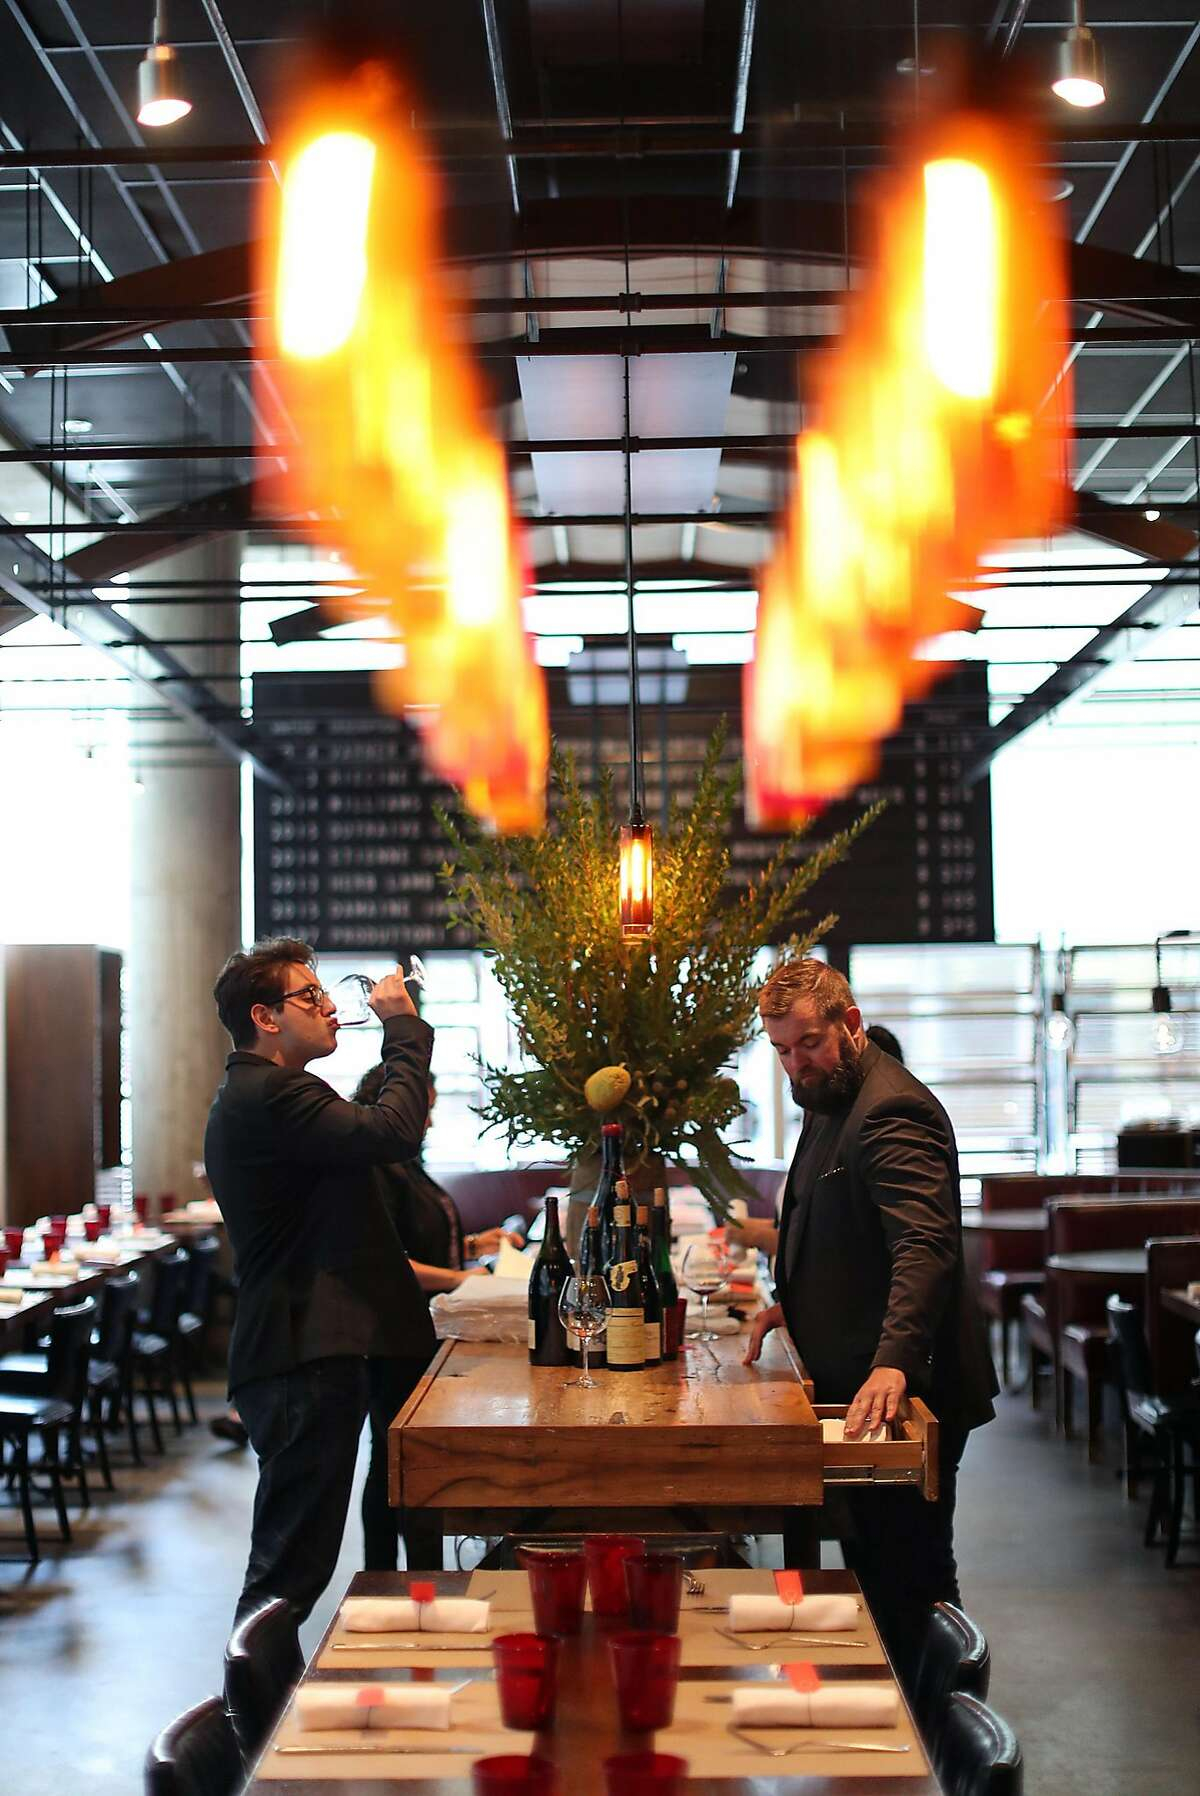 Sommelier Jeremy Shanker (left) and wine director David Castleberry choose wines to pair with dinner at RN74 in San Francisco, Calif., on Monday, September 18, 2017. The famed restaurant will serve its final meal on October 7th to make way for Ayesha Curry's new restaurant, International Smoke.